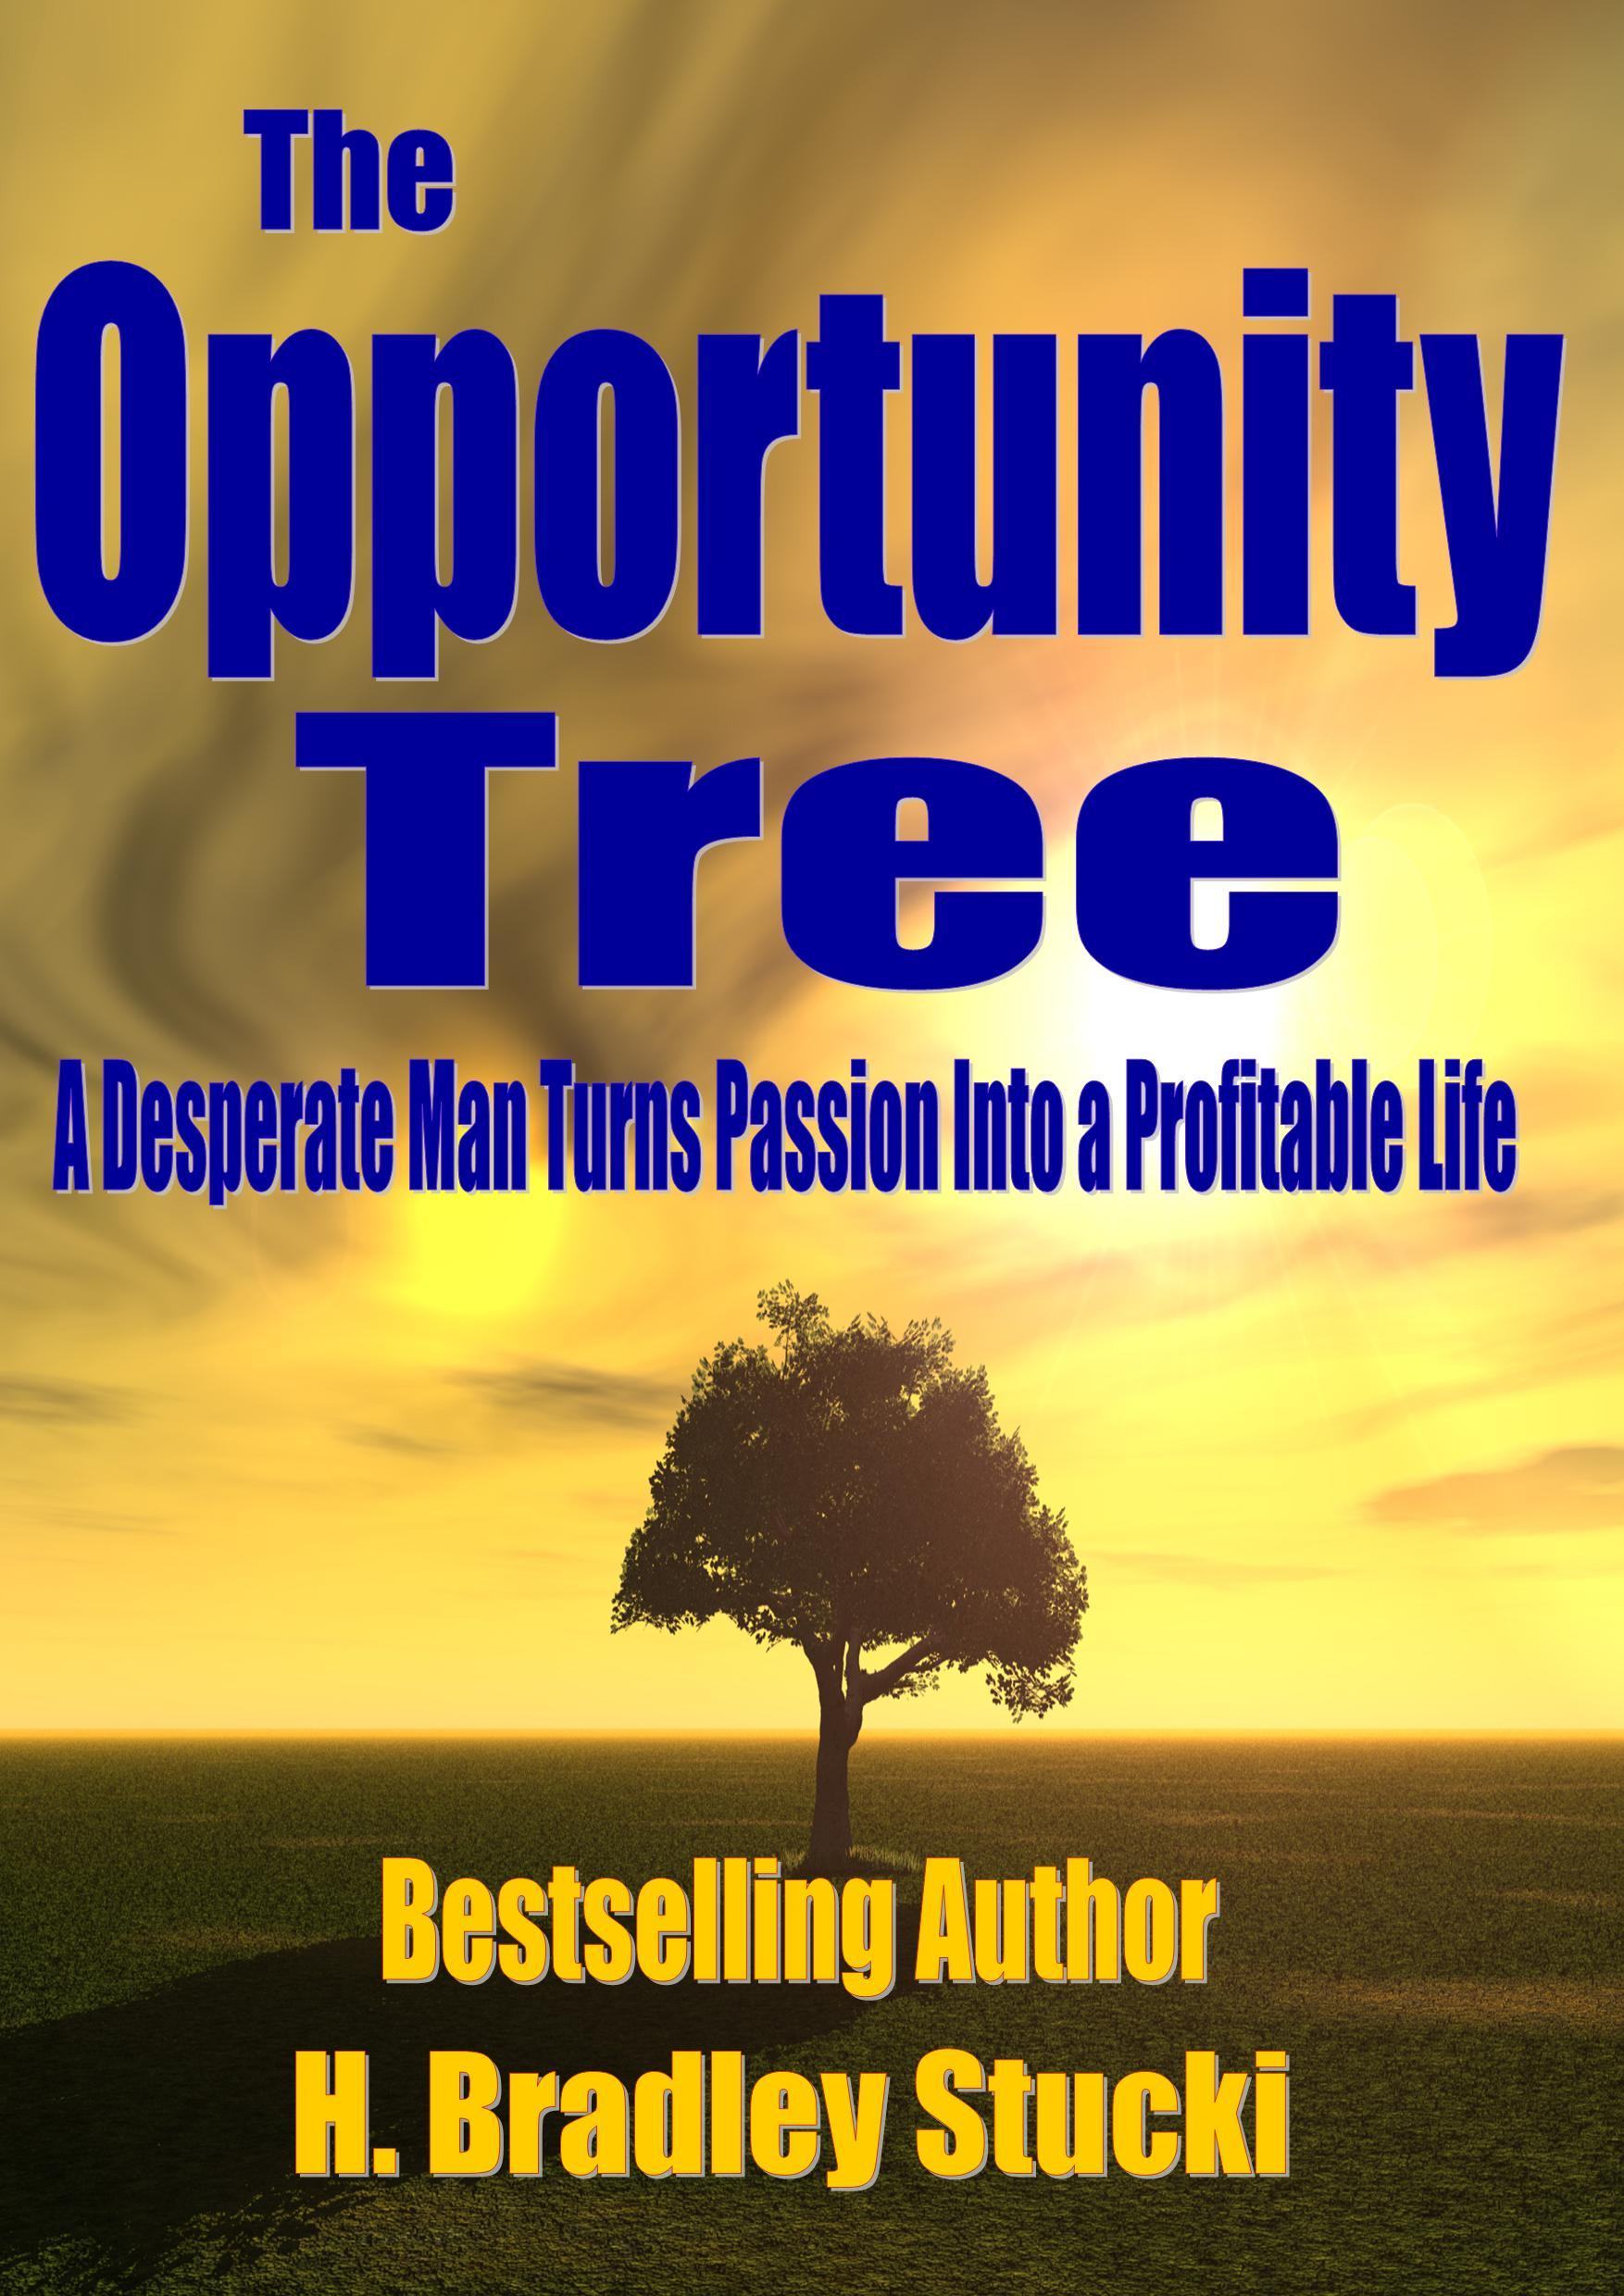 The Opportunity Tree; A Desperate Man Turns Passion Into a Profitable Life